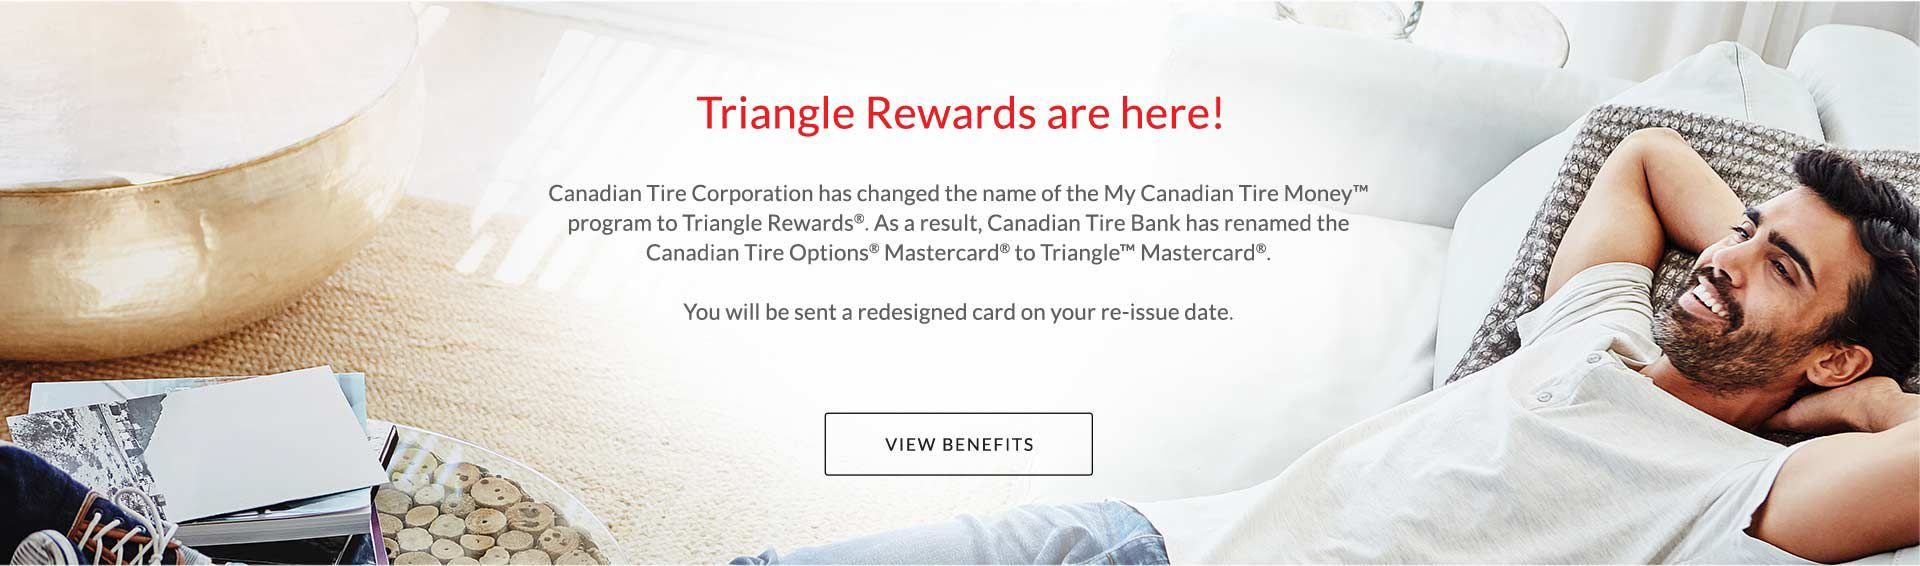 Triangle Rewards are here!!